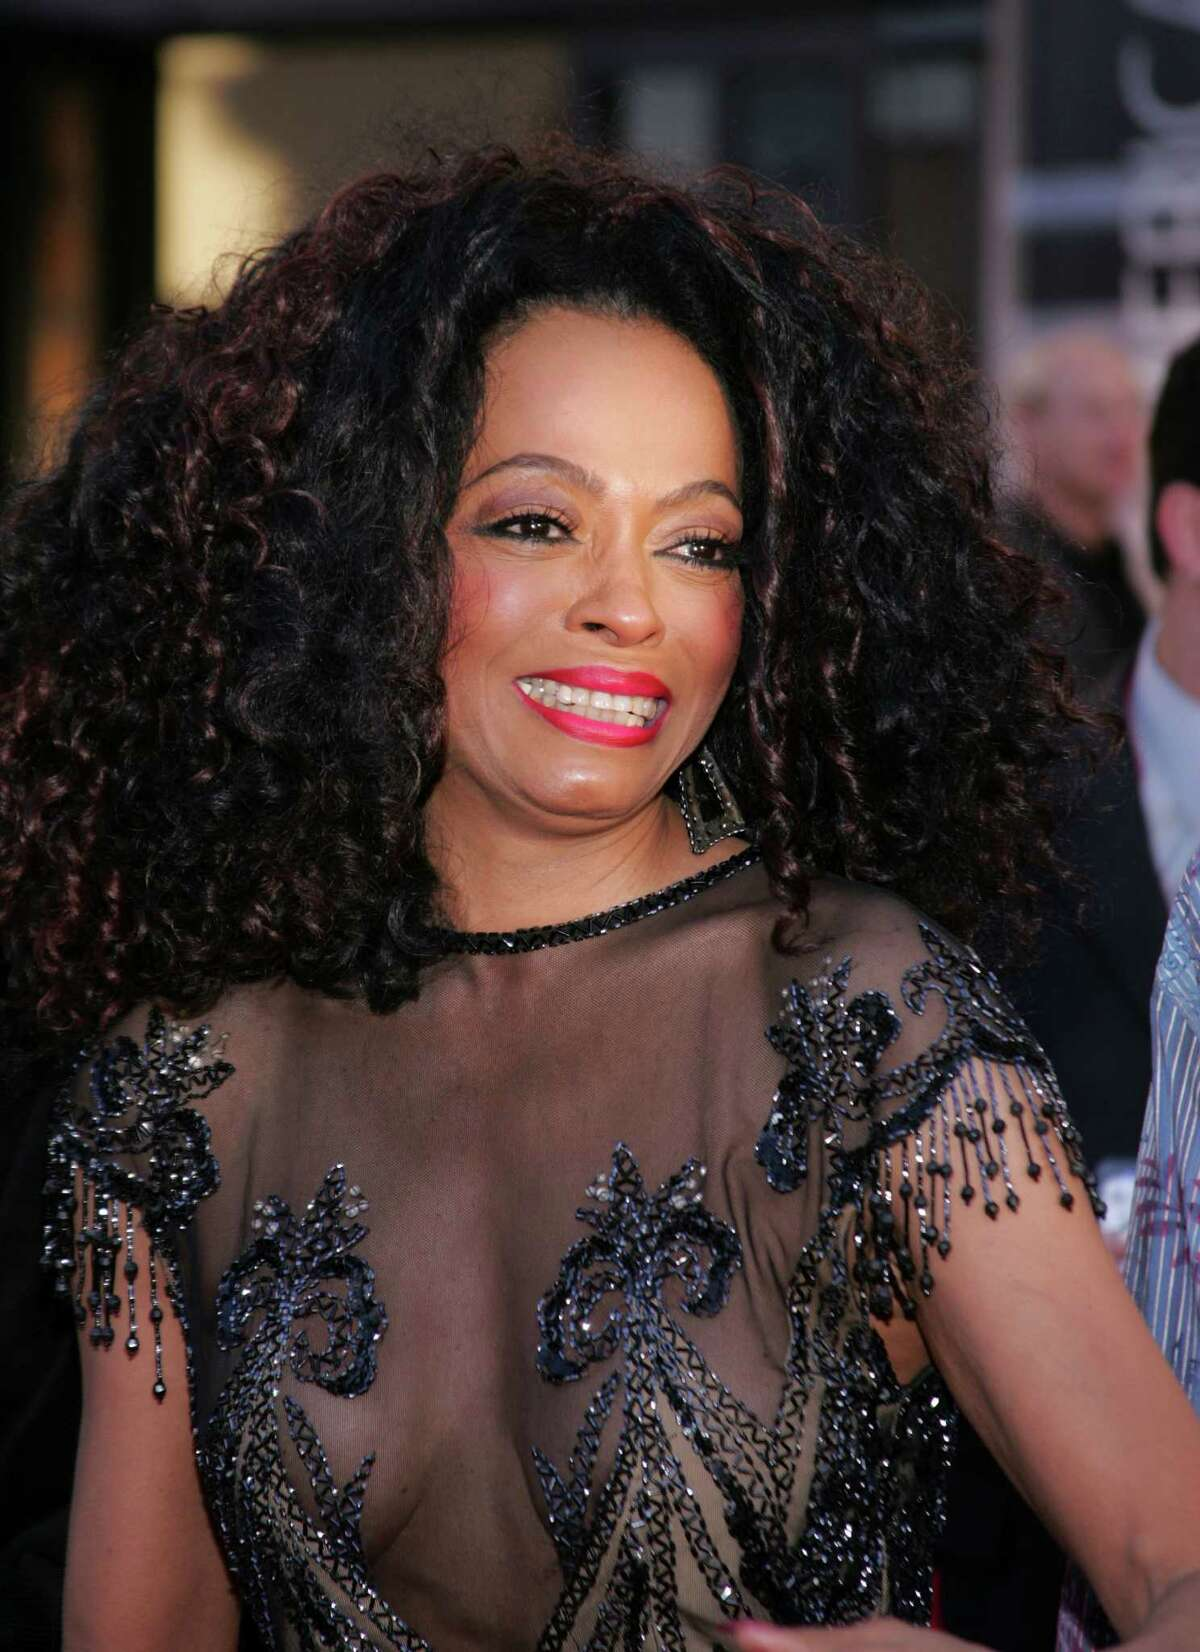 """LOS ANGELES, CA - NOVEMBER 14: Singer Diana Ross arrives to the 32nd Annual """"American Music Awards"""" at the Shrine Auditorium November 14, 2004 in Los Angeles, California. (Photo by Carlo Allegri/Getty Images)"""